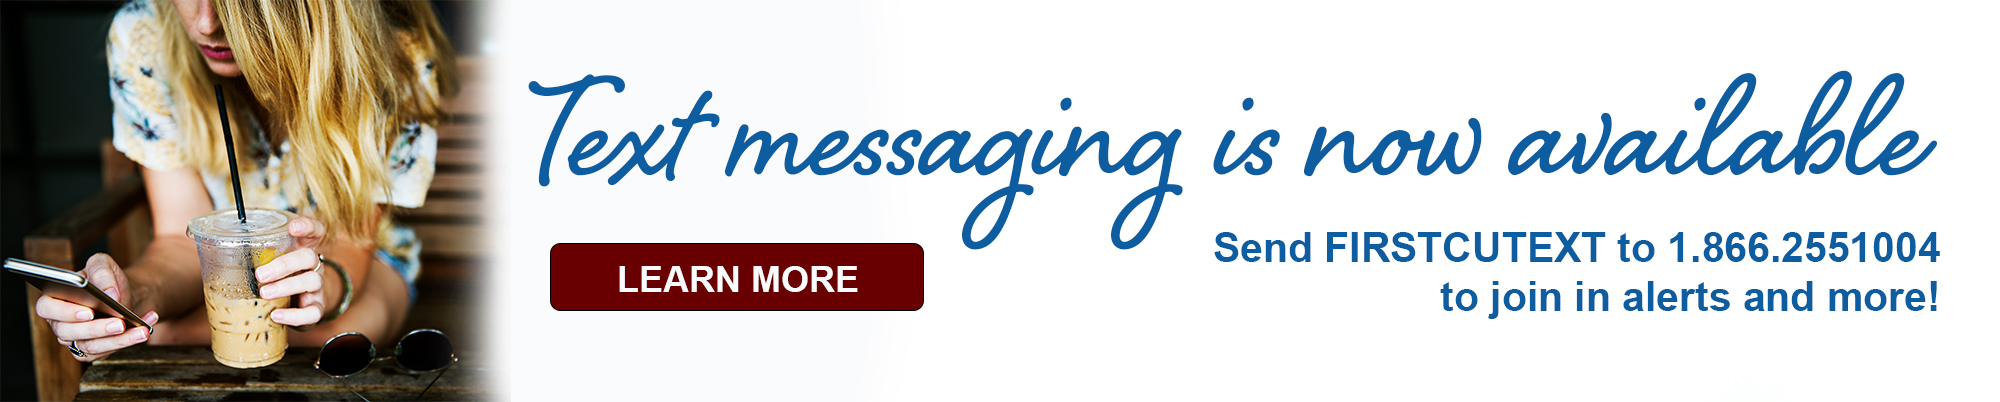 Texting now available